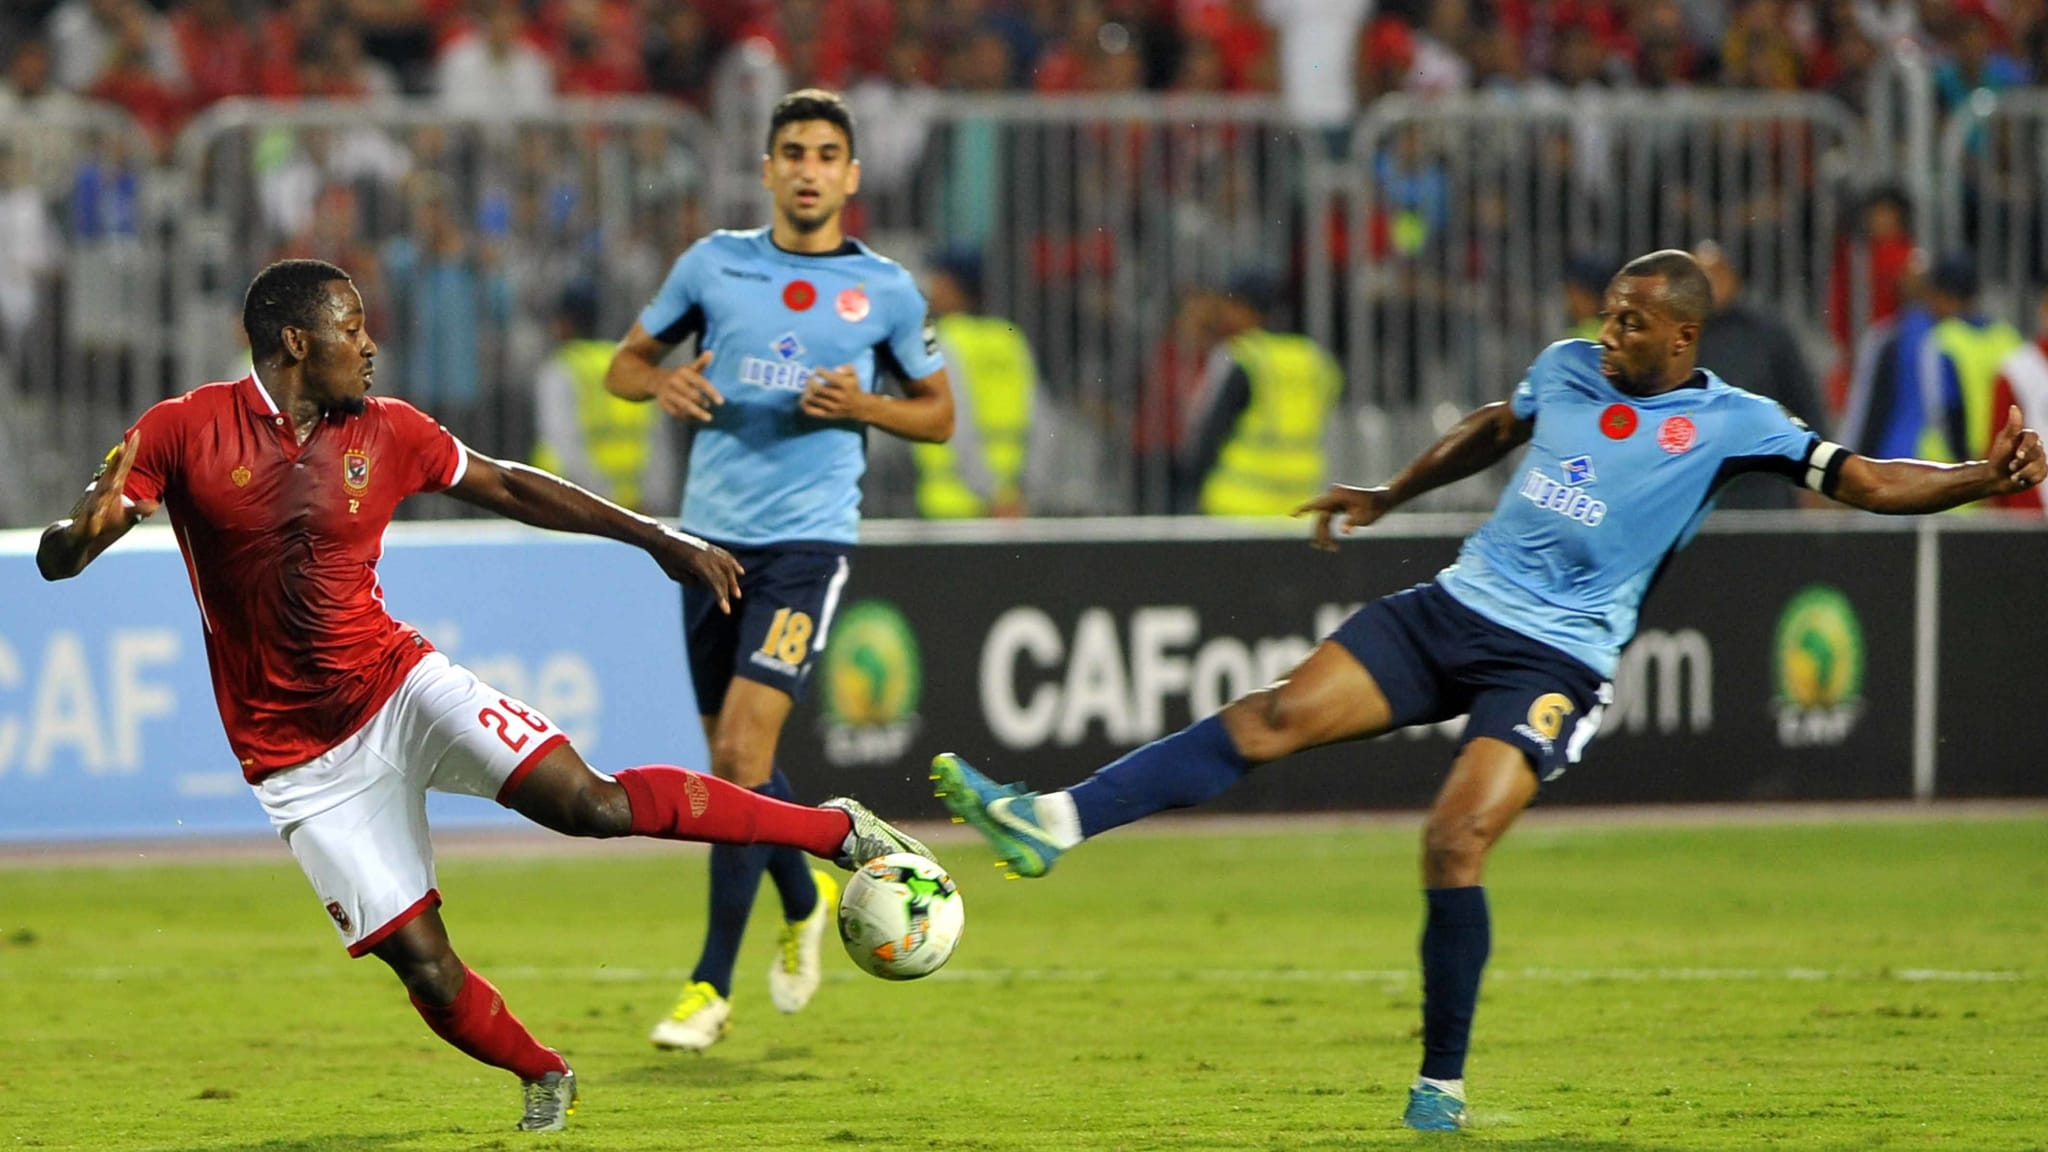 Wydad's midfielder Brahim Nakach (R) vies for the ball with Ahly s forward Junior Ajayi